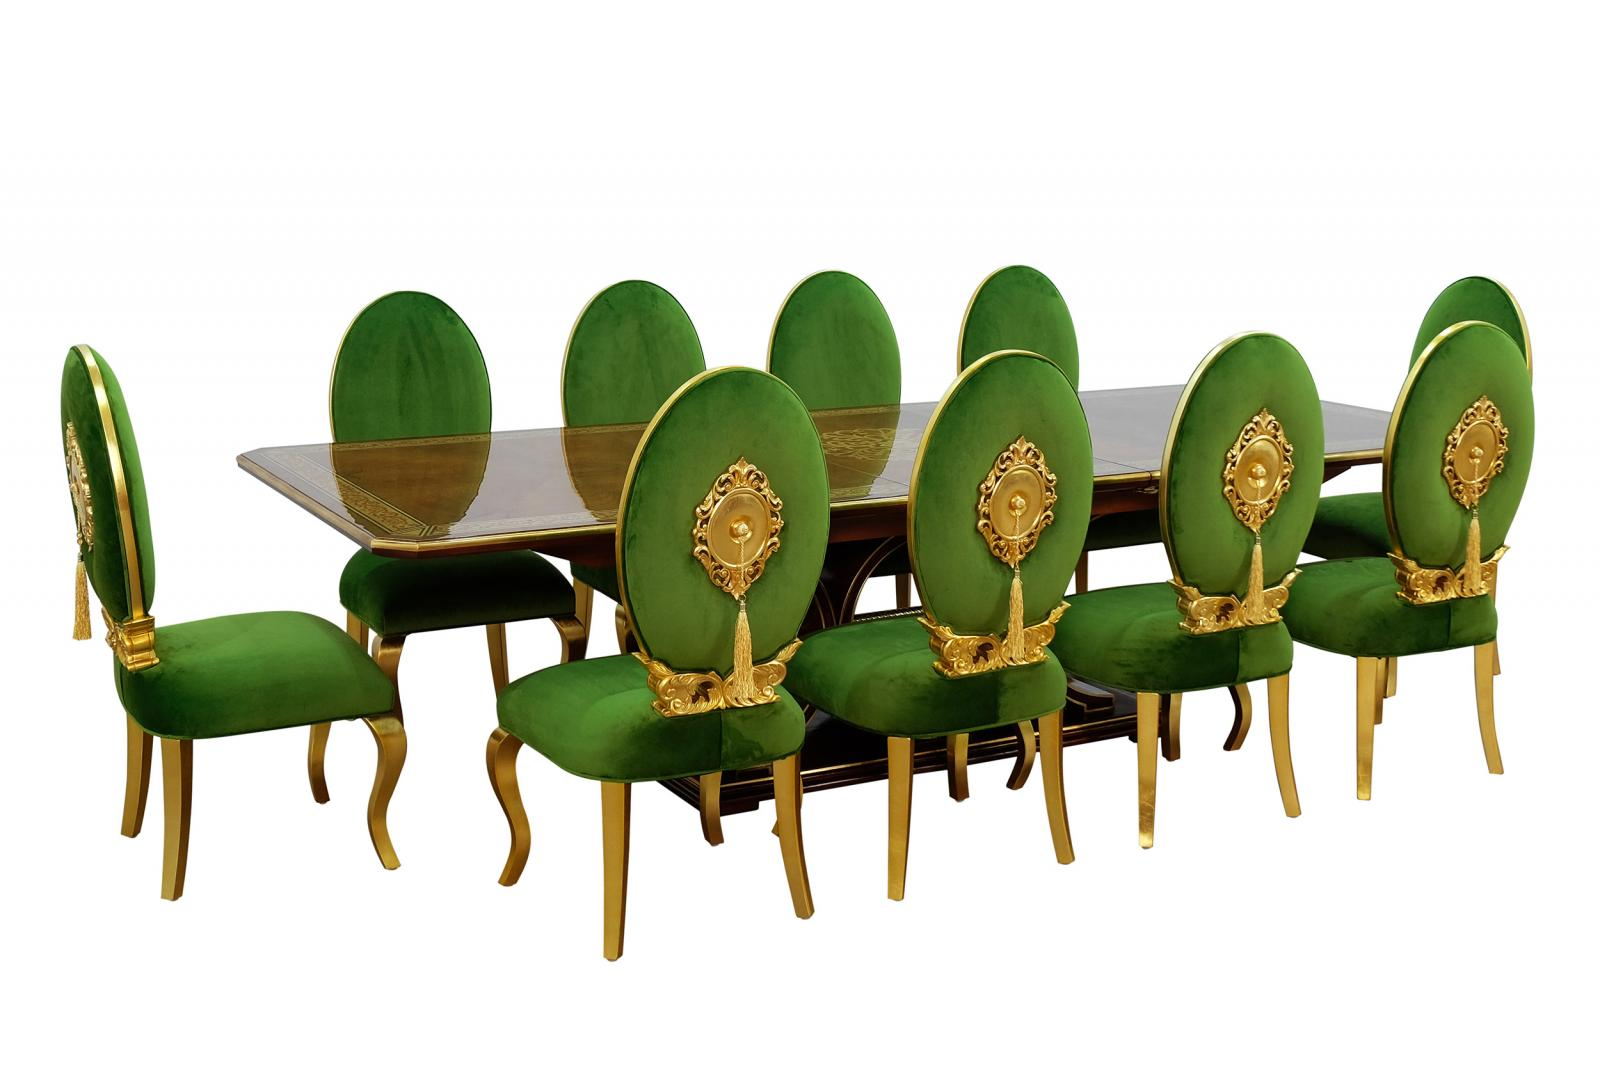 Contemporary, Modern Emerald, Gold, Ebony Velvet and Wood, Solid Hardwood Dining Table Set 11 pcs ROSELLA by European Furniture